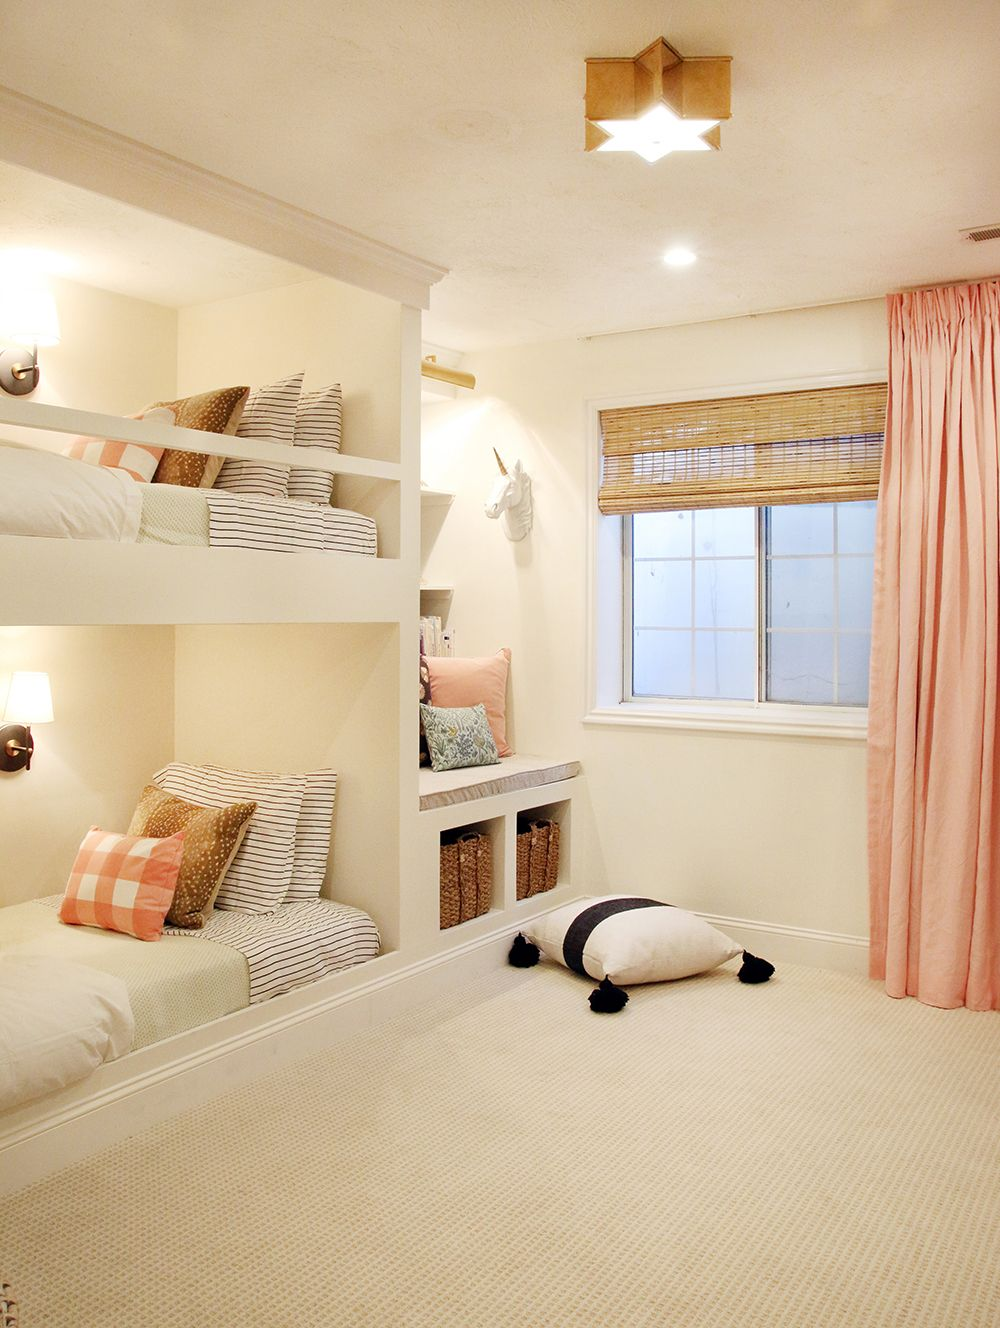 Loft bed lighting ideas  The Reveal A Shared Girlsu Room Complete with BuiltIn Bunks